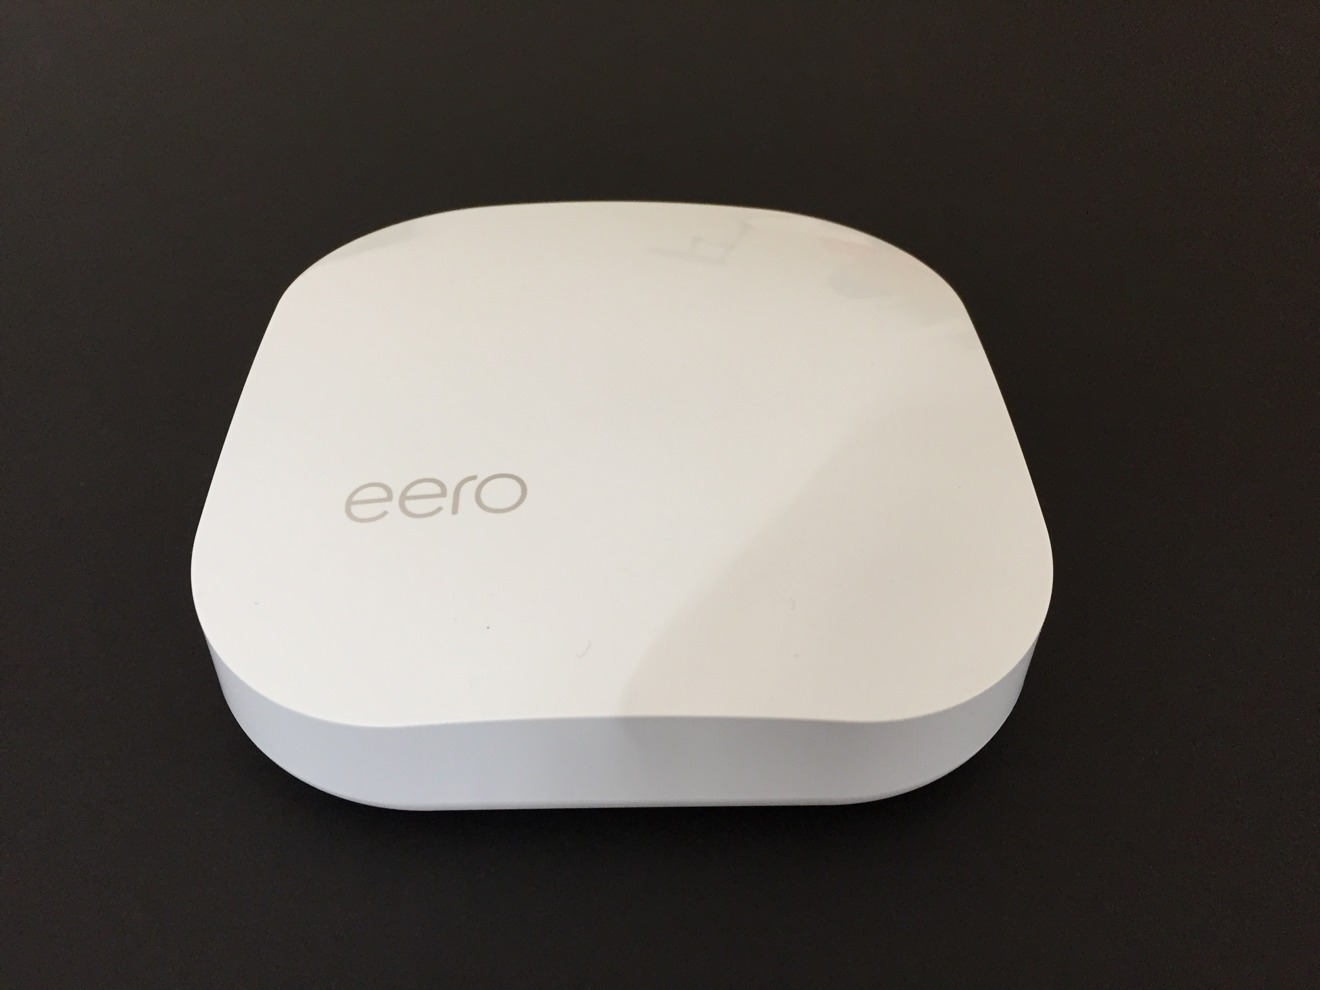 Eero is nice, simple, and doesn't look like networking equipment of old